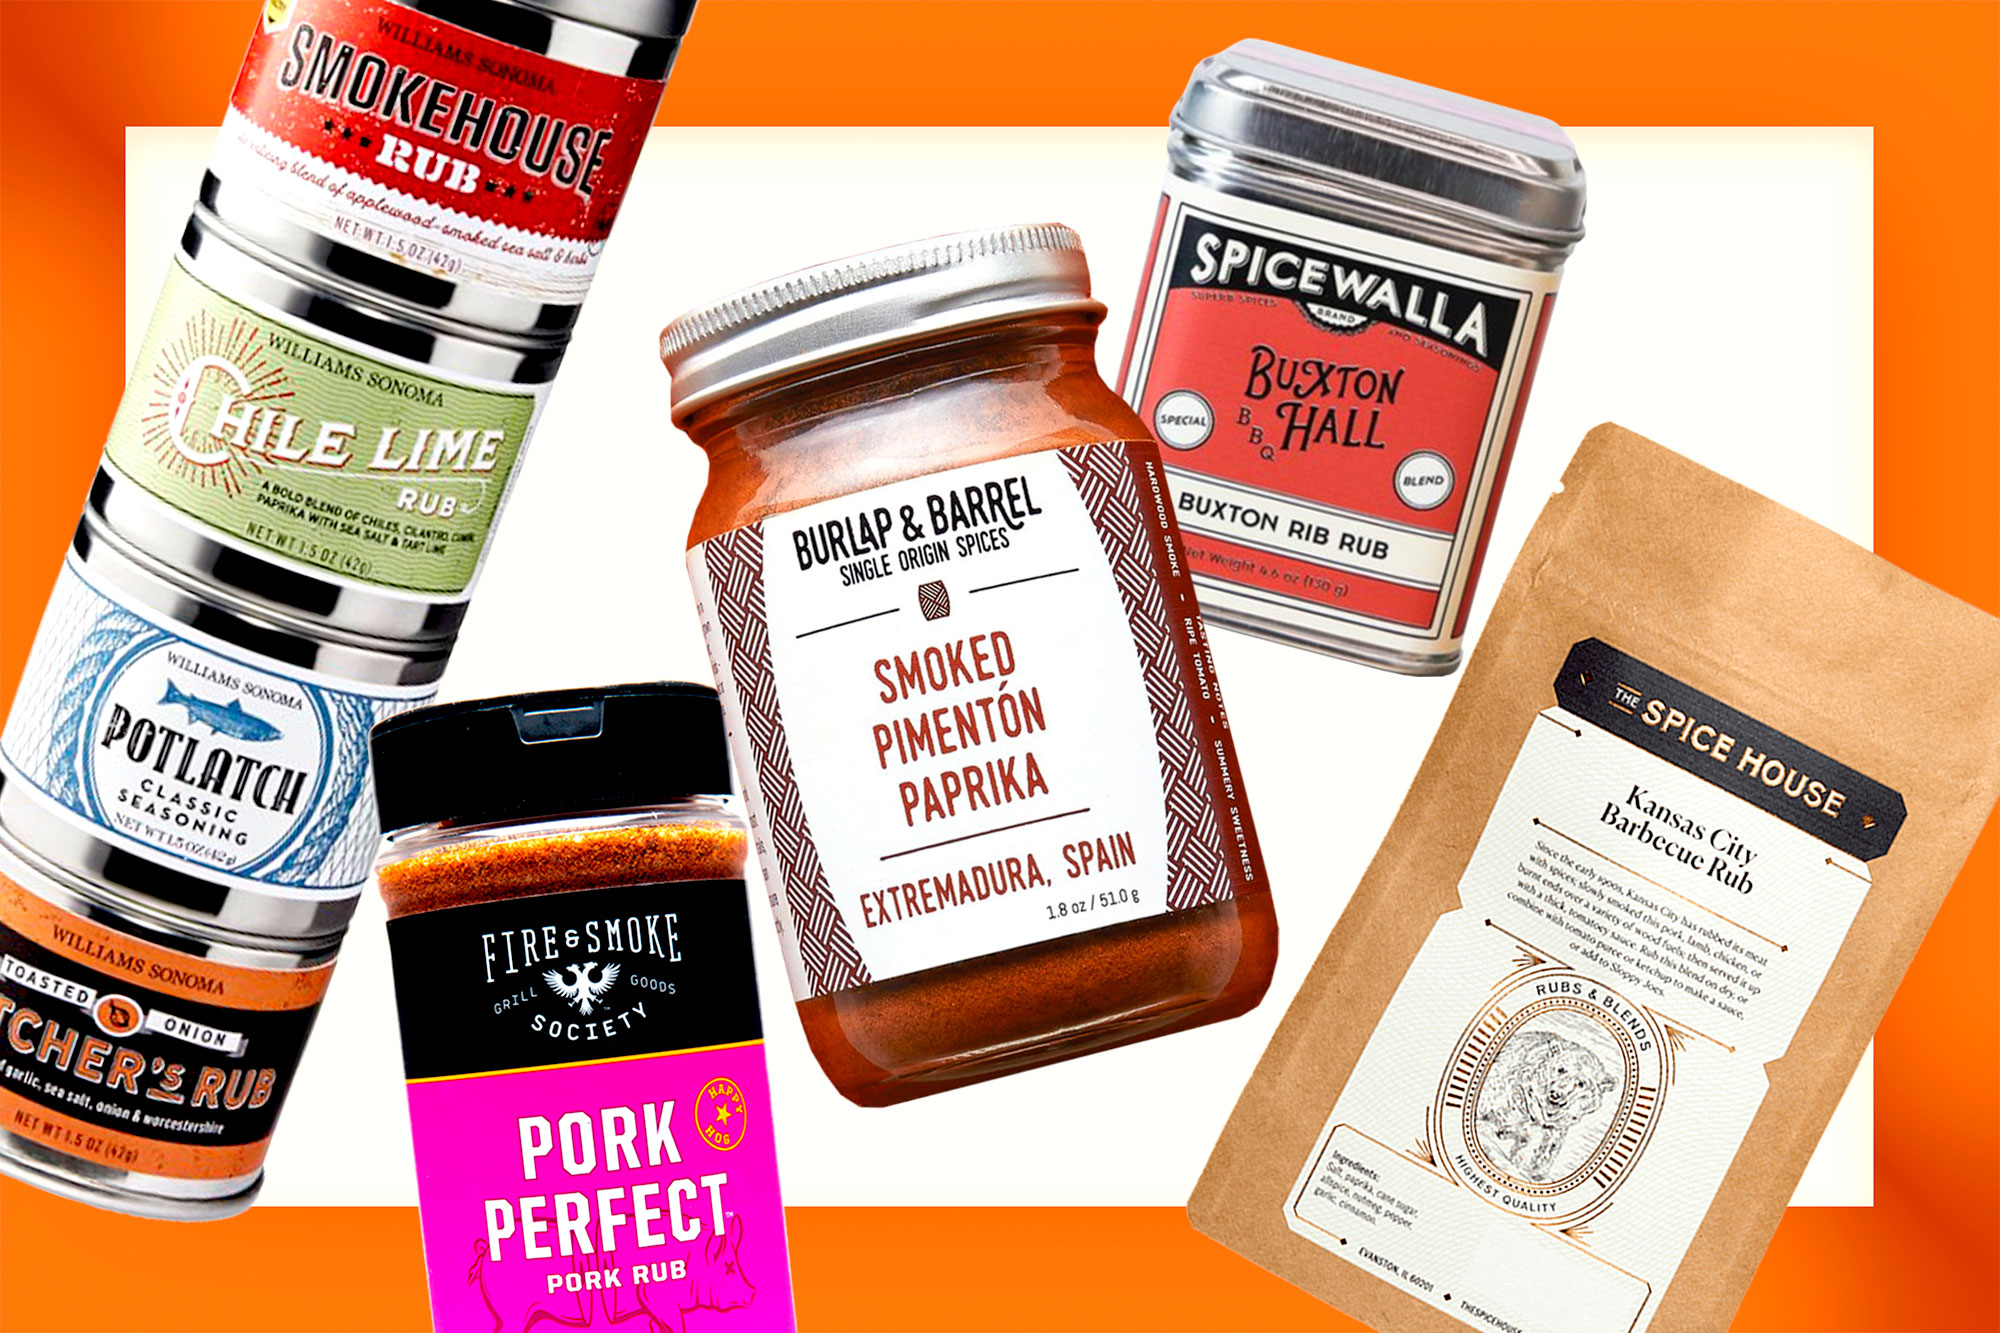 Barbecue spices from Williams Sonoma, Fire & Smoke Society, Burlap & Barrel, Spicewalla, and The Spice House